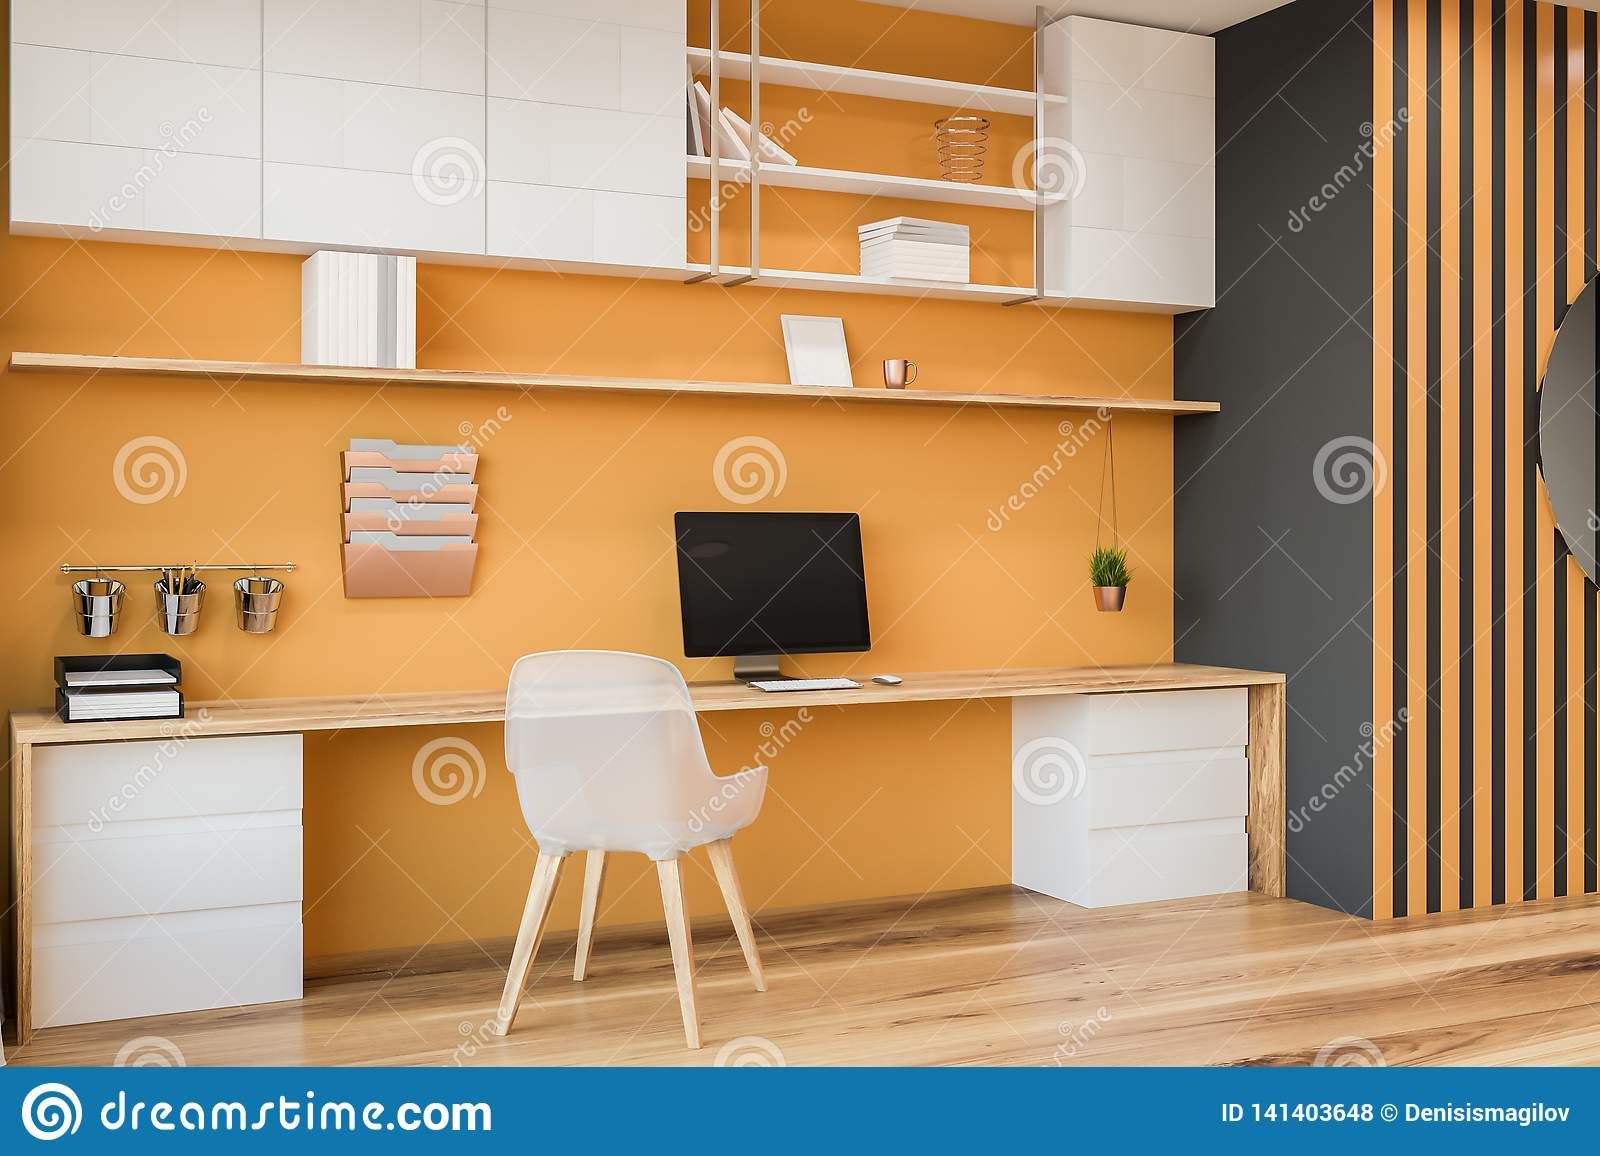 Yellow And Gray Home Office Interior, Blurred Stock ...